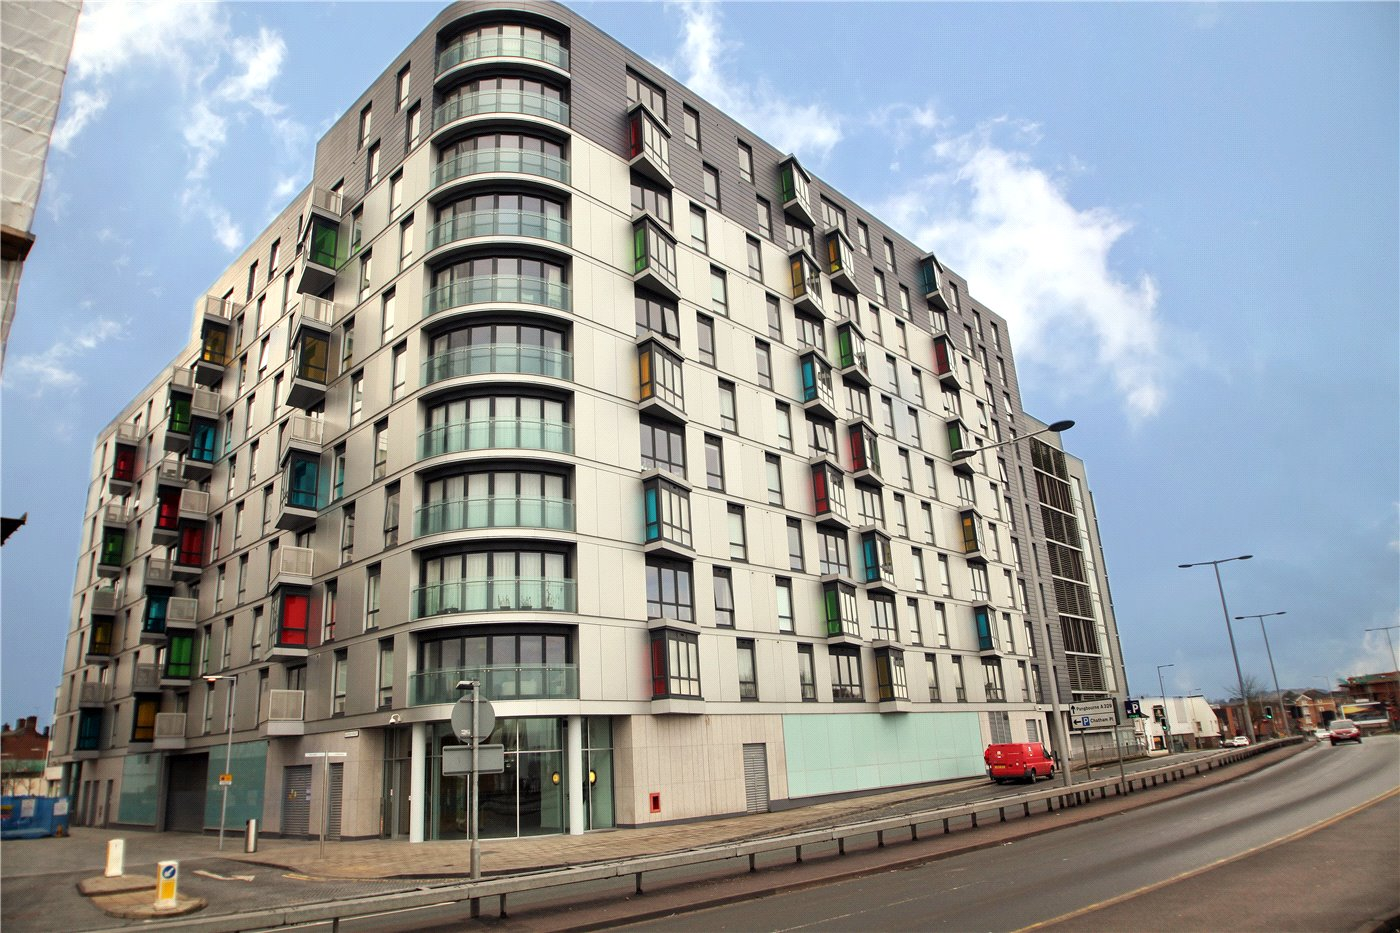 2 Bedroom Property For Sale In Hermitage Chatham Street